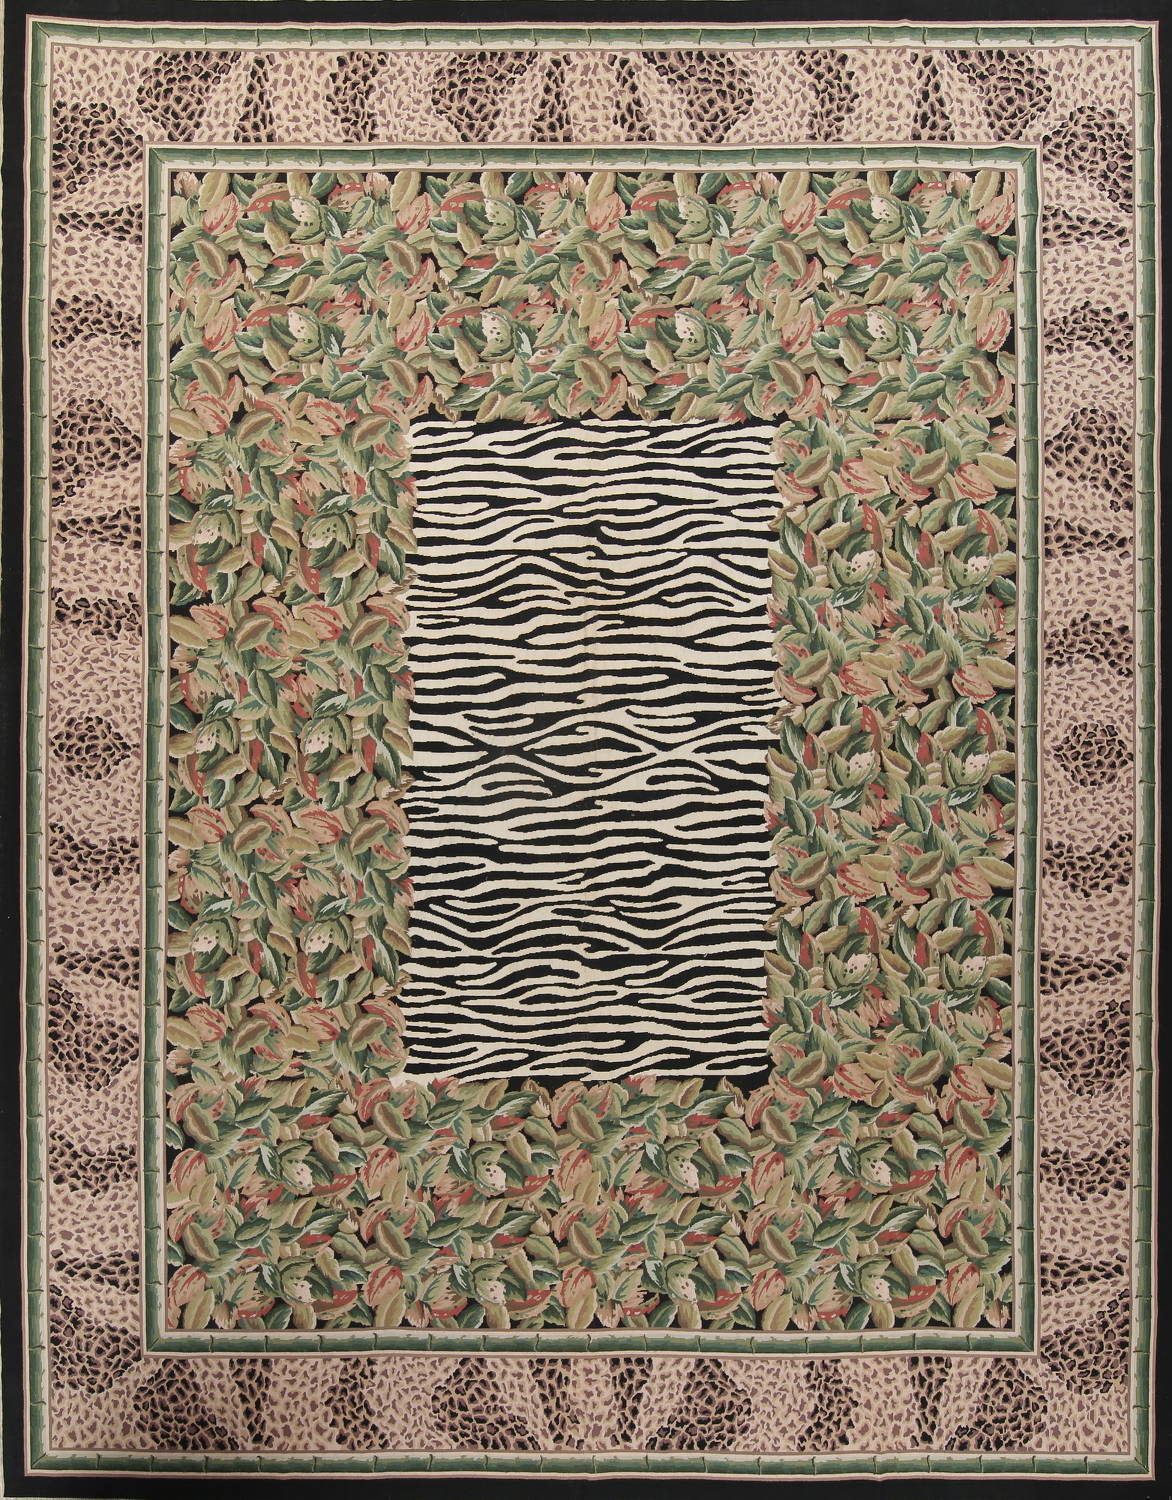 Transitional Animal Print Aubusson Oriental Hand-Woven Area Rug 12x15 image 1